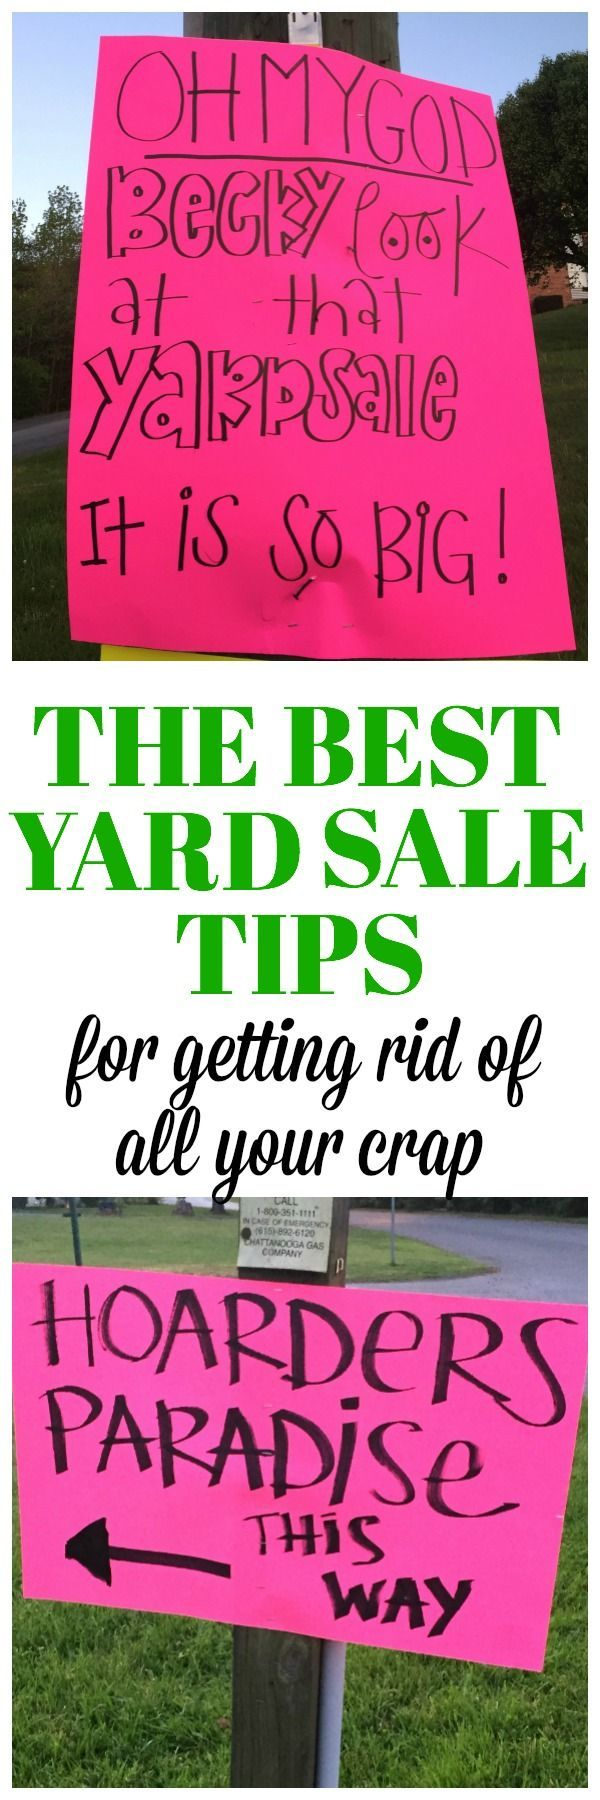 The best yard sale tips and garage sale tips for getting rid of all your crap